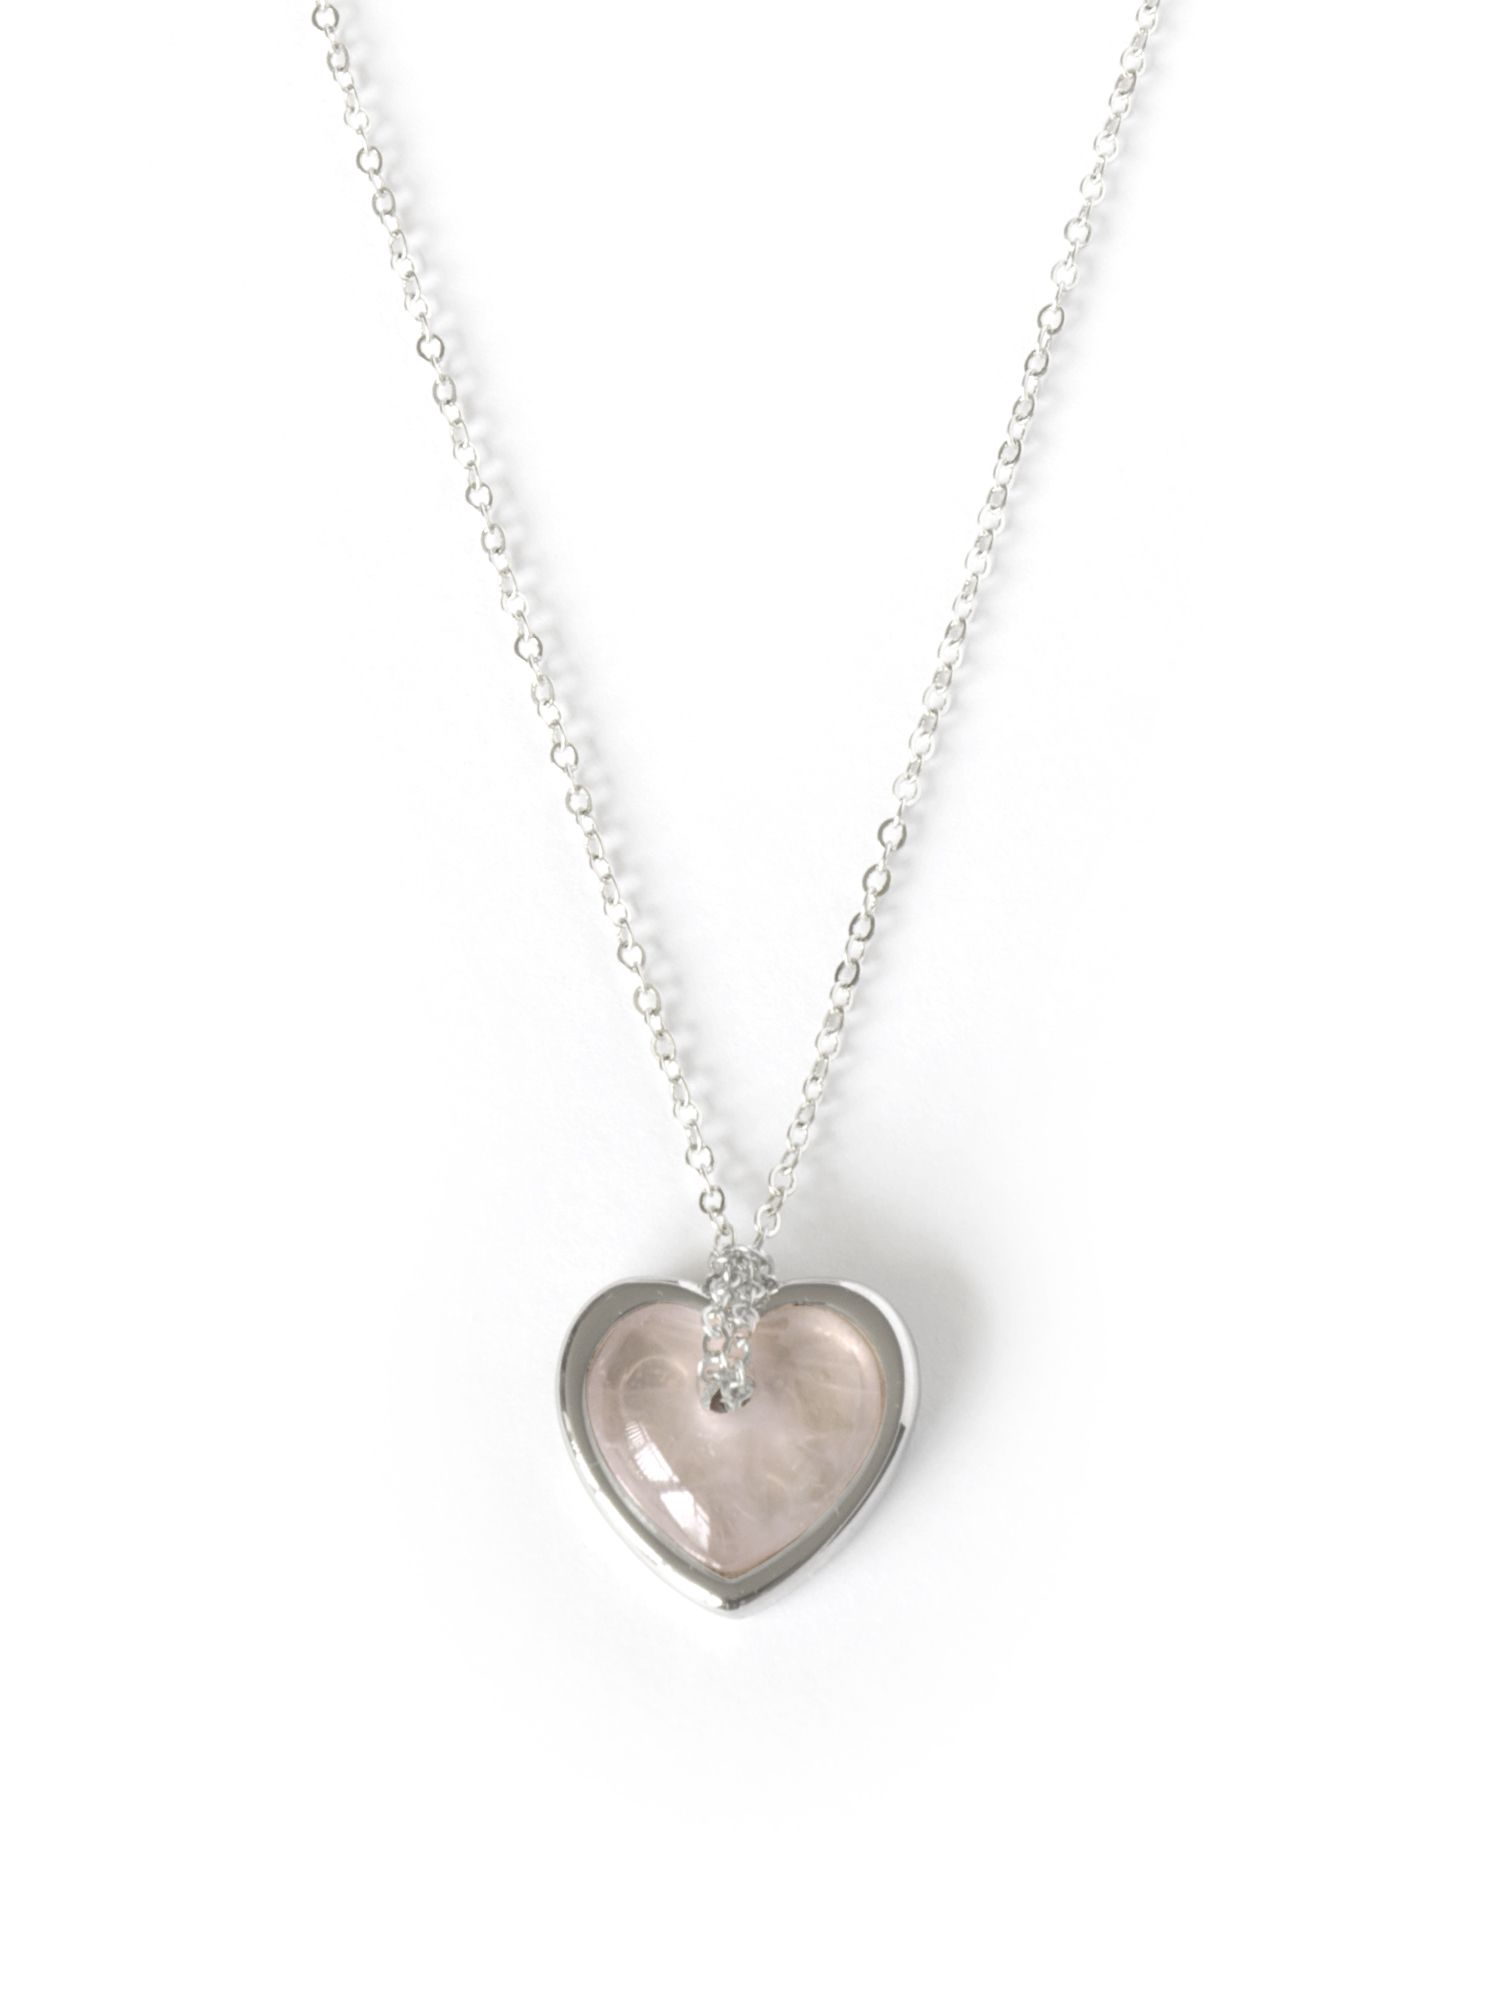 Mum rose quartz heart necklace